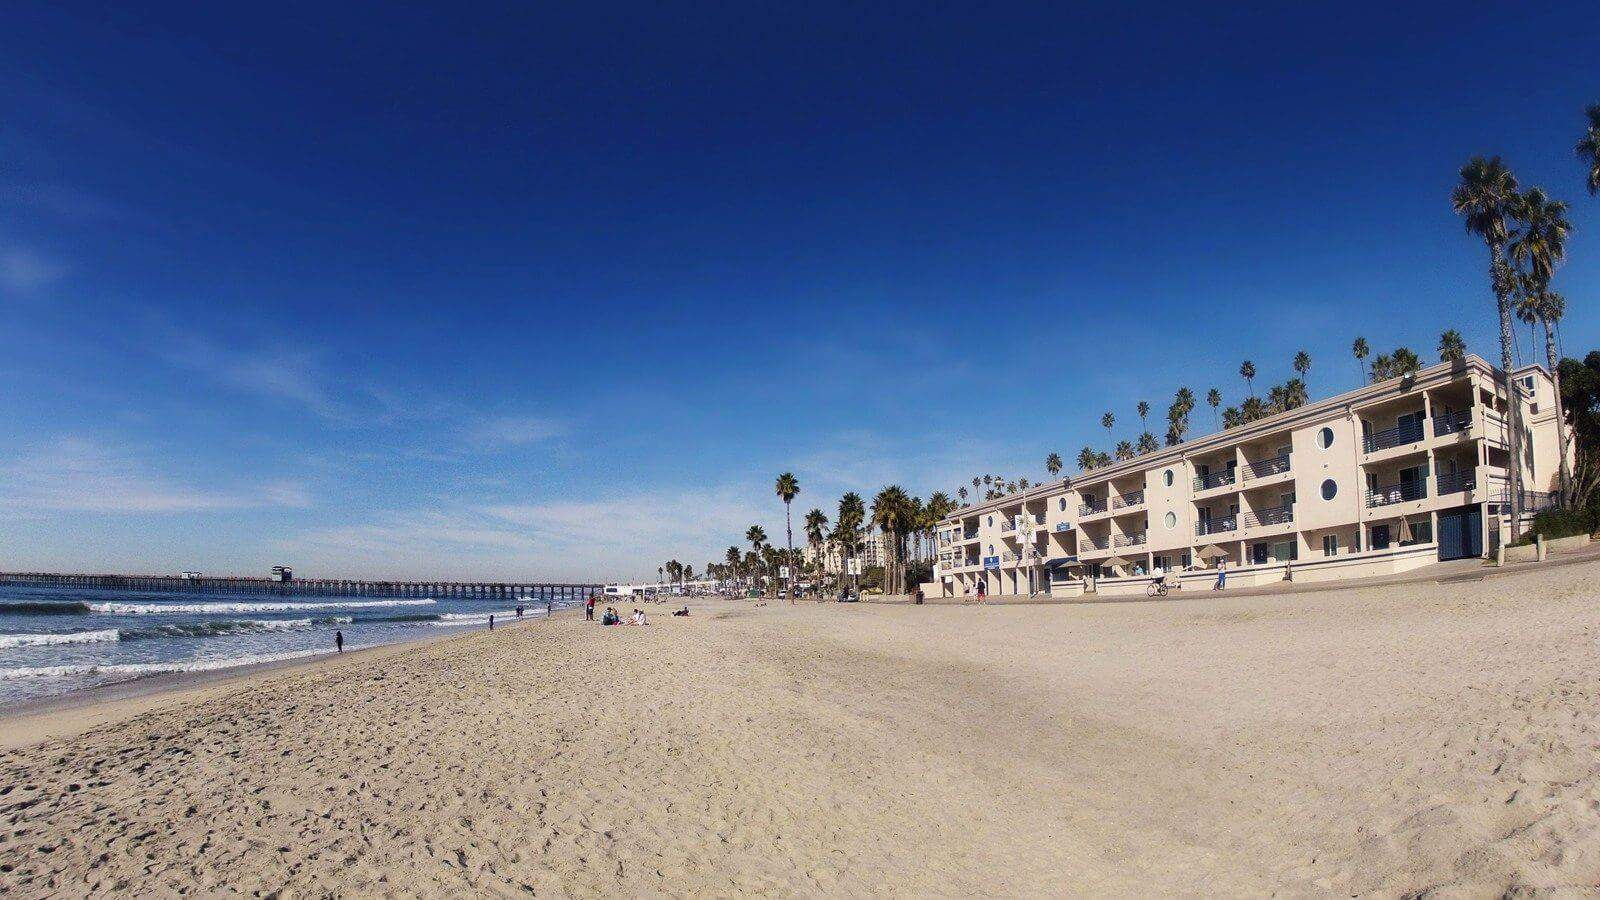 Southern California Beach Club Oceanside, CA